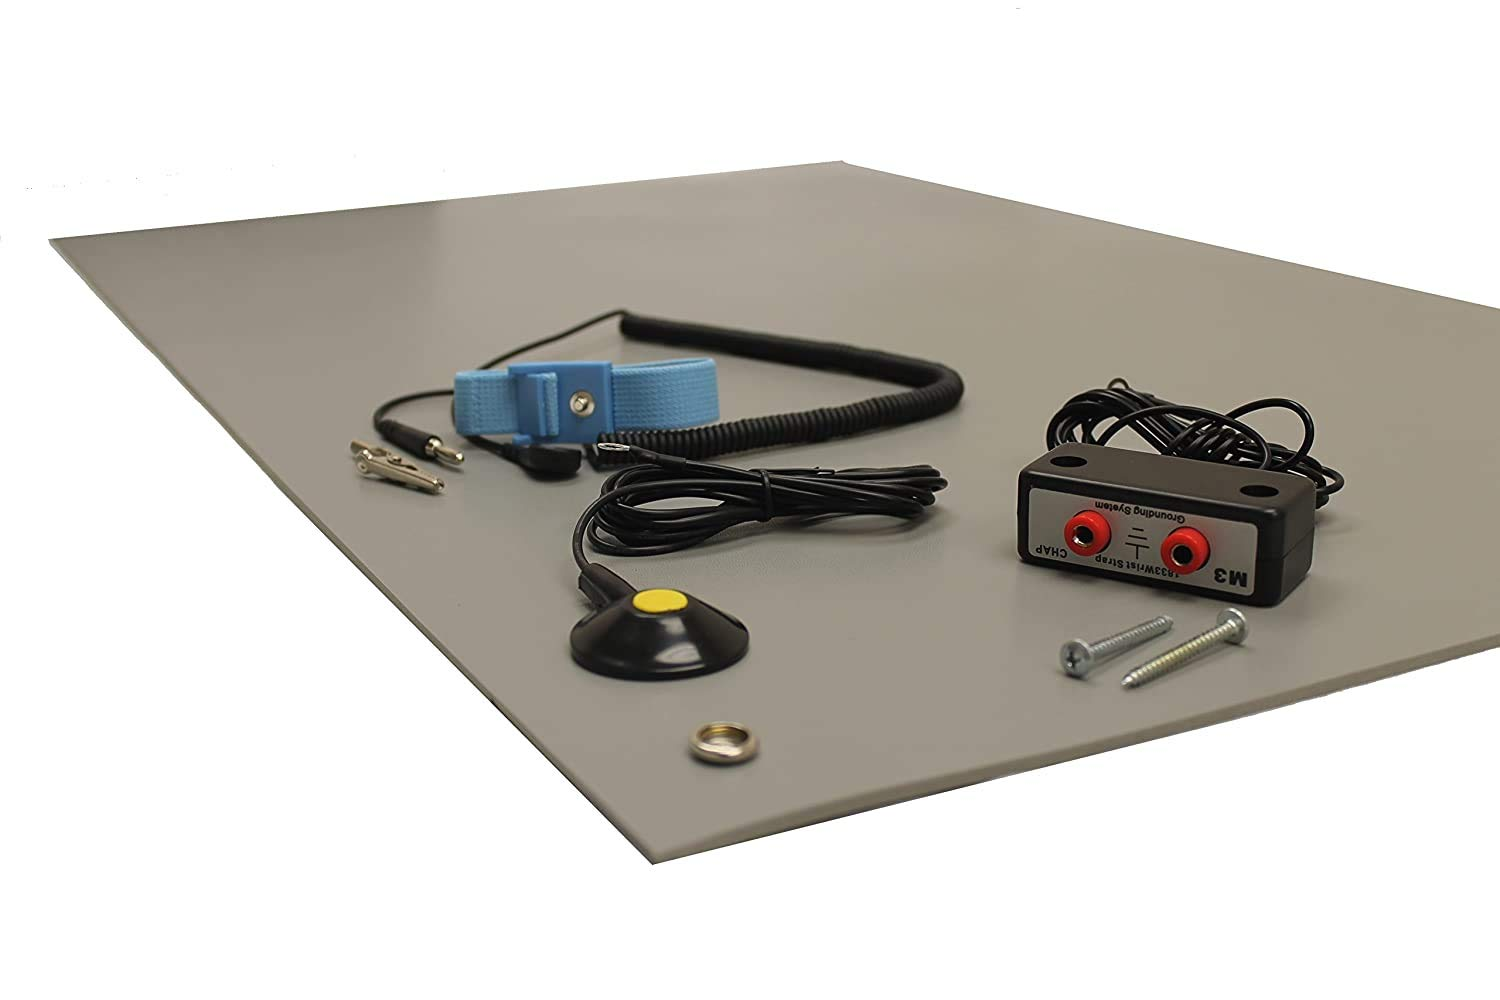 36 X 36 Gray 3 Wide x 3 Long x 0.125 Thick ESD Mat Kit with a Wrist Strap and Grounding Cord Three Layer Vinyl Dual Bench Grounding